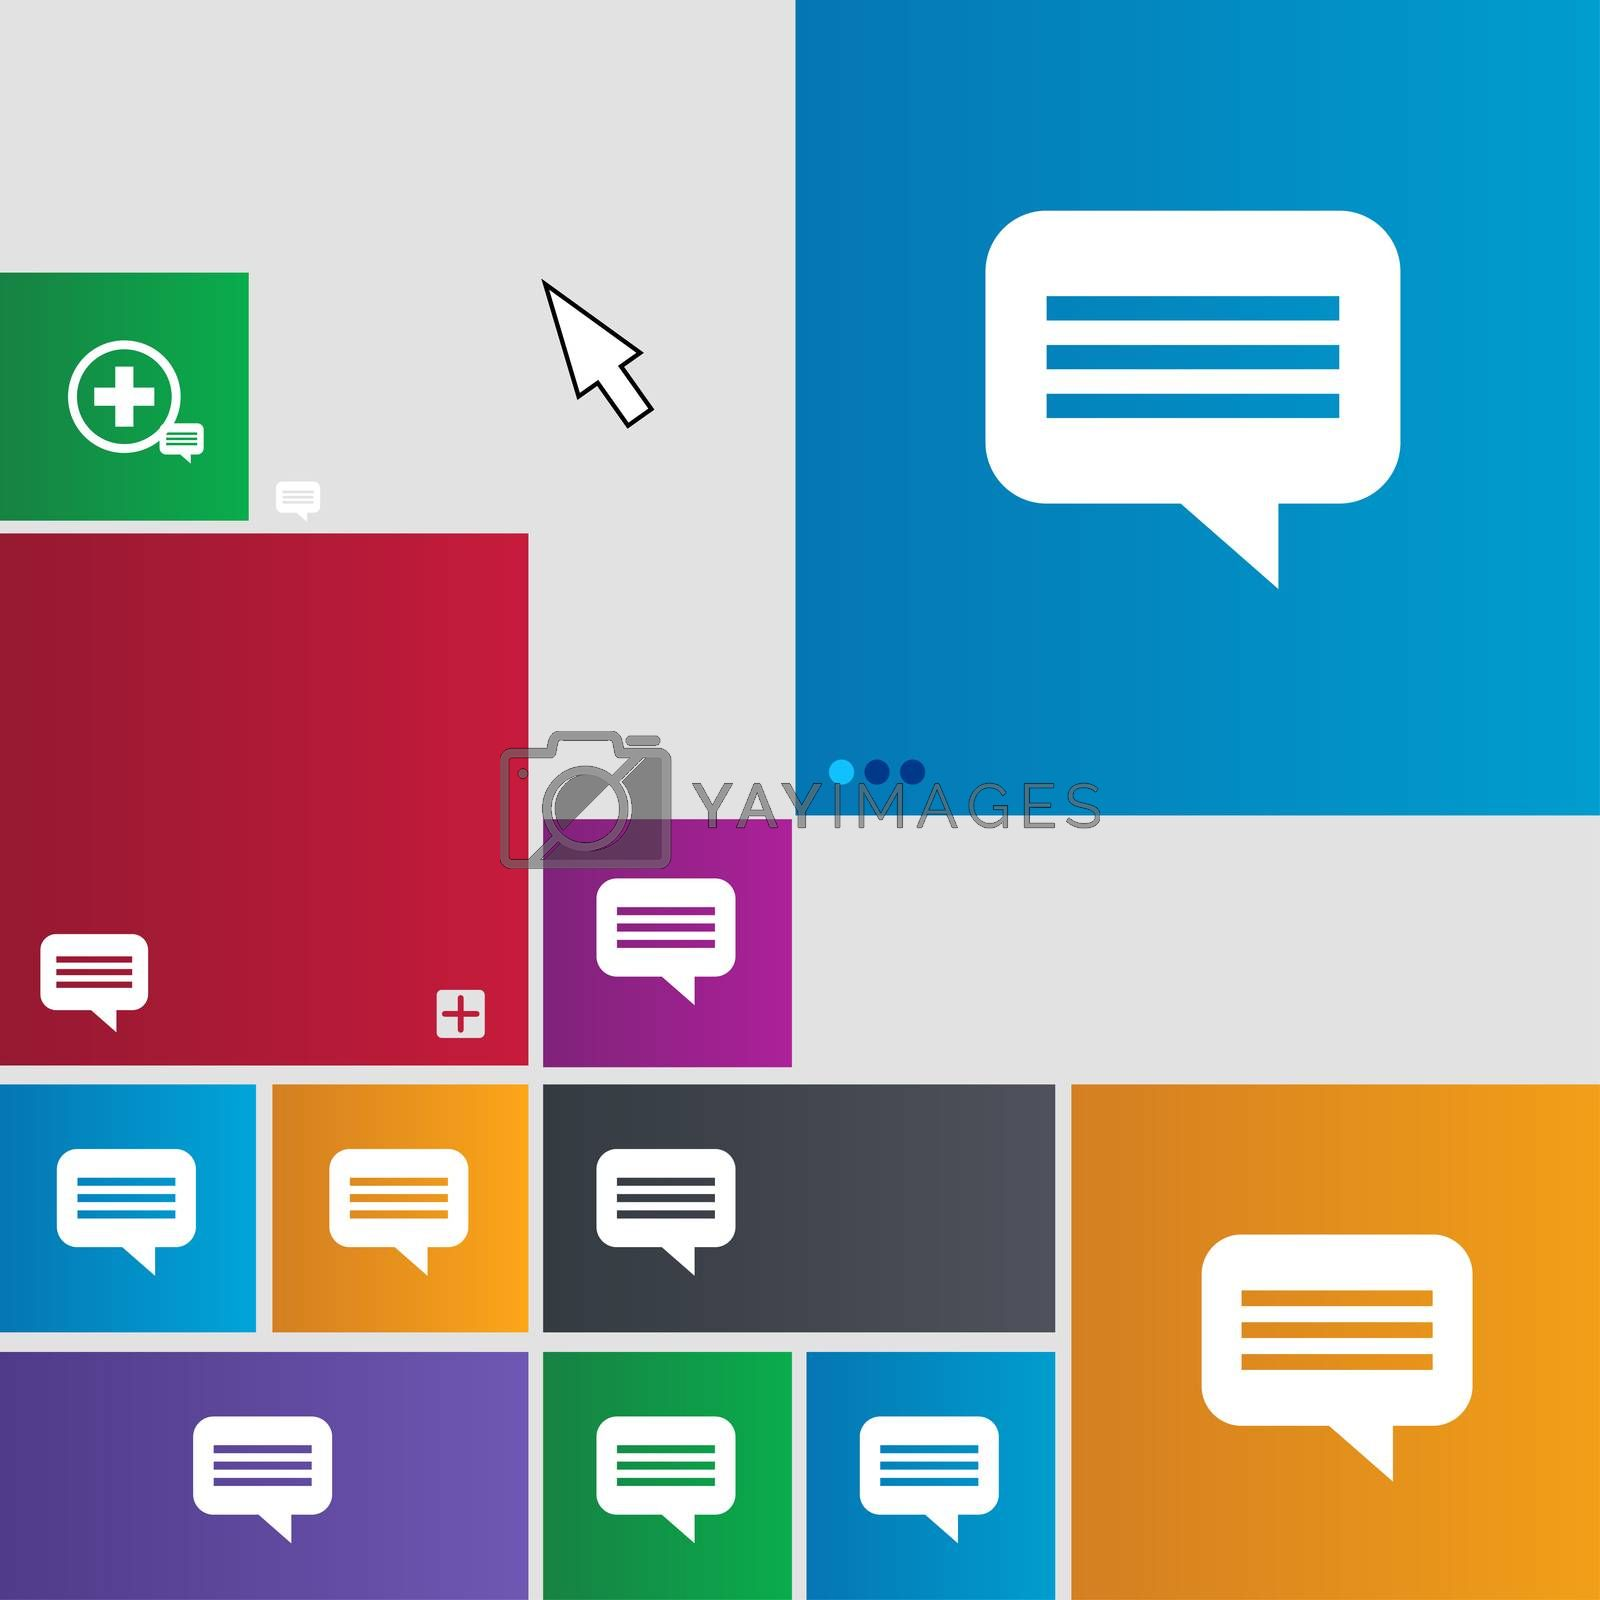 speech bubble, Chat think icon sign. Metro style buttons. Modern interface website buttons with cursor pointer.  by Serhii Lohvyniuk